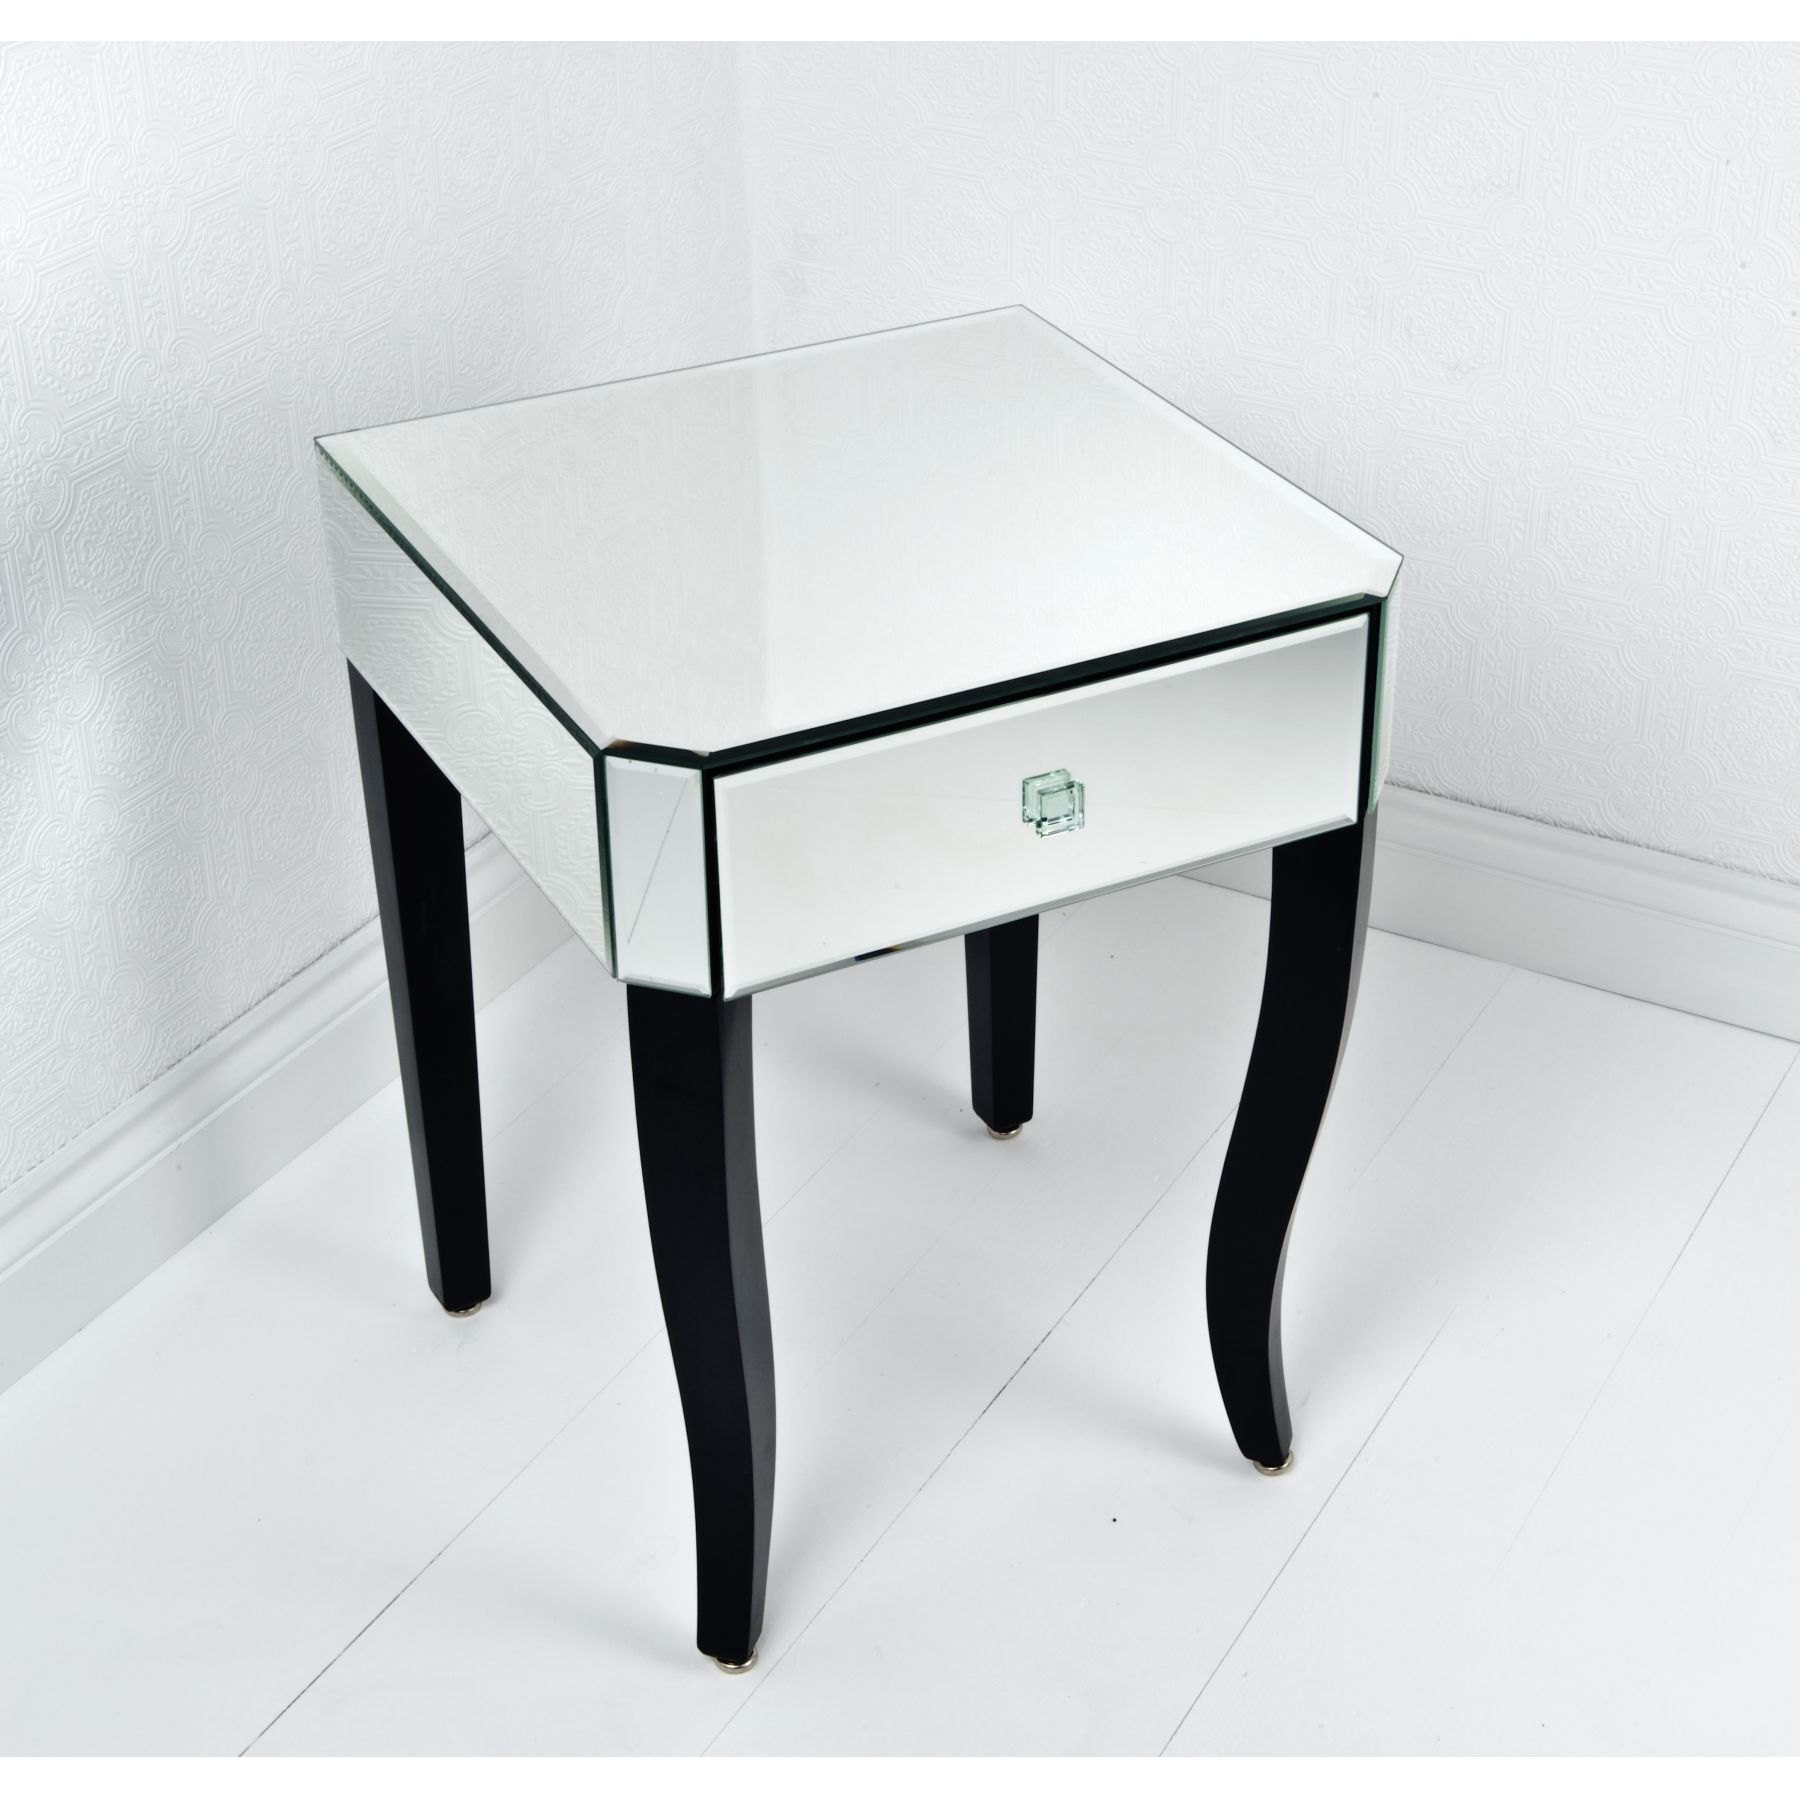 probably fantastic favorite mirrored floating nightstand double square black wooden bedside table connected with low furniture bedroom classy white stained legs mirror drawer and